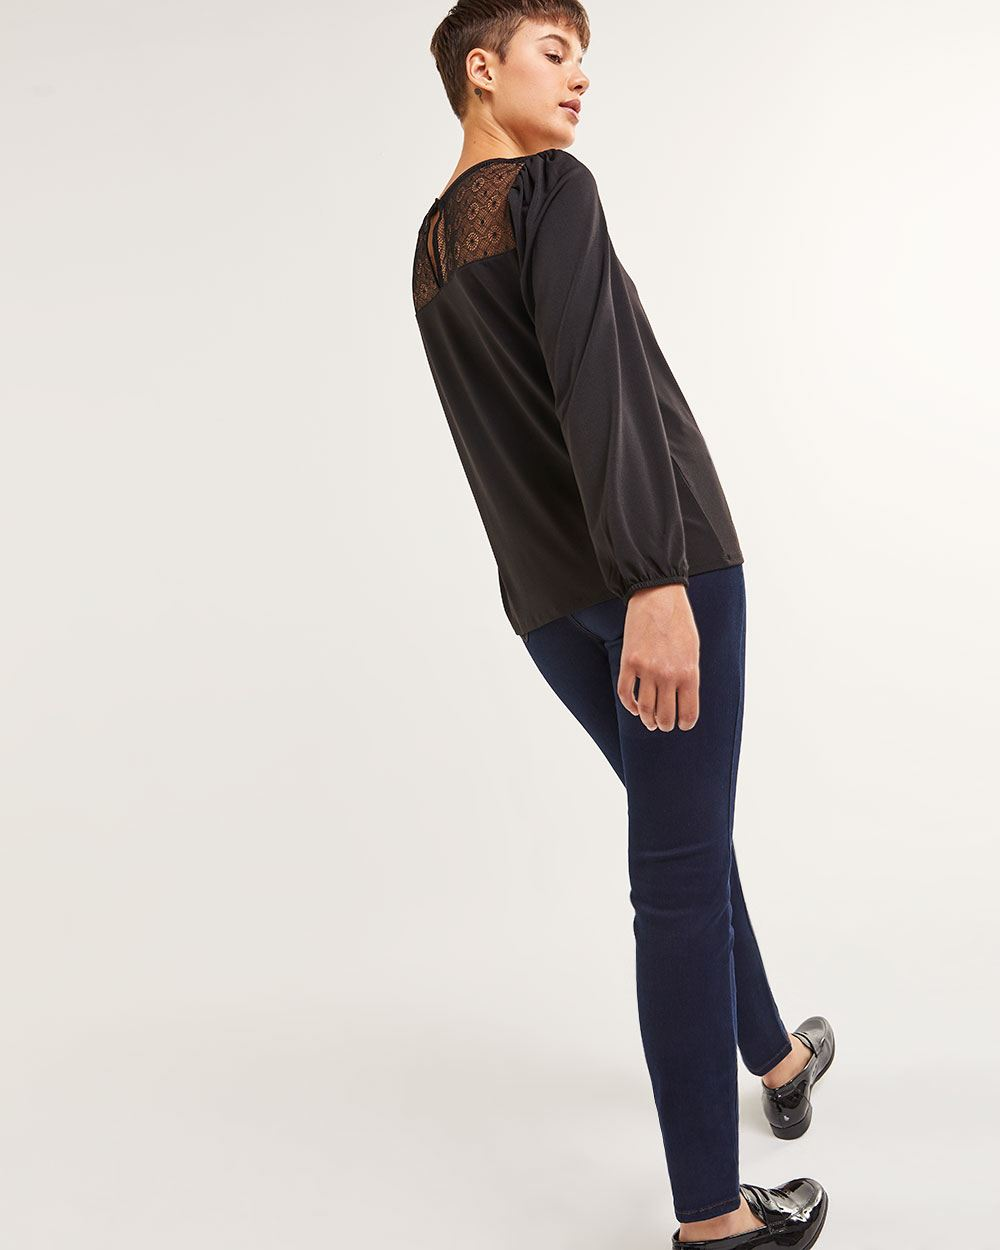 Long Sleeve Lace Yoke Top - Petite